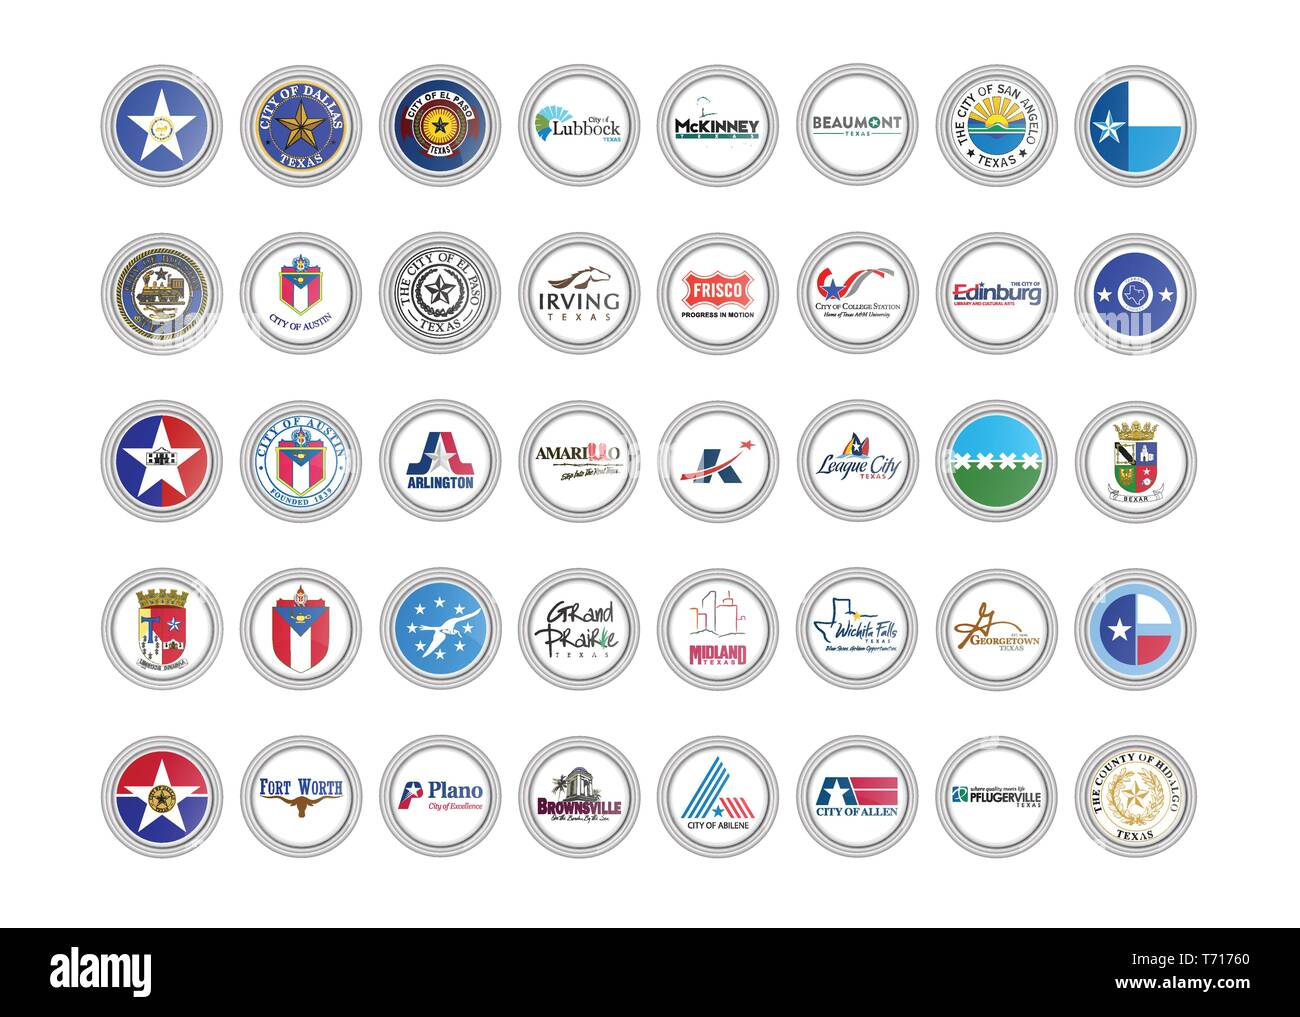 Set of vector icons. Flags and seals of Texas state, USA. 3D illustration. - Stock Vector